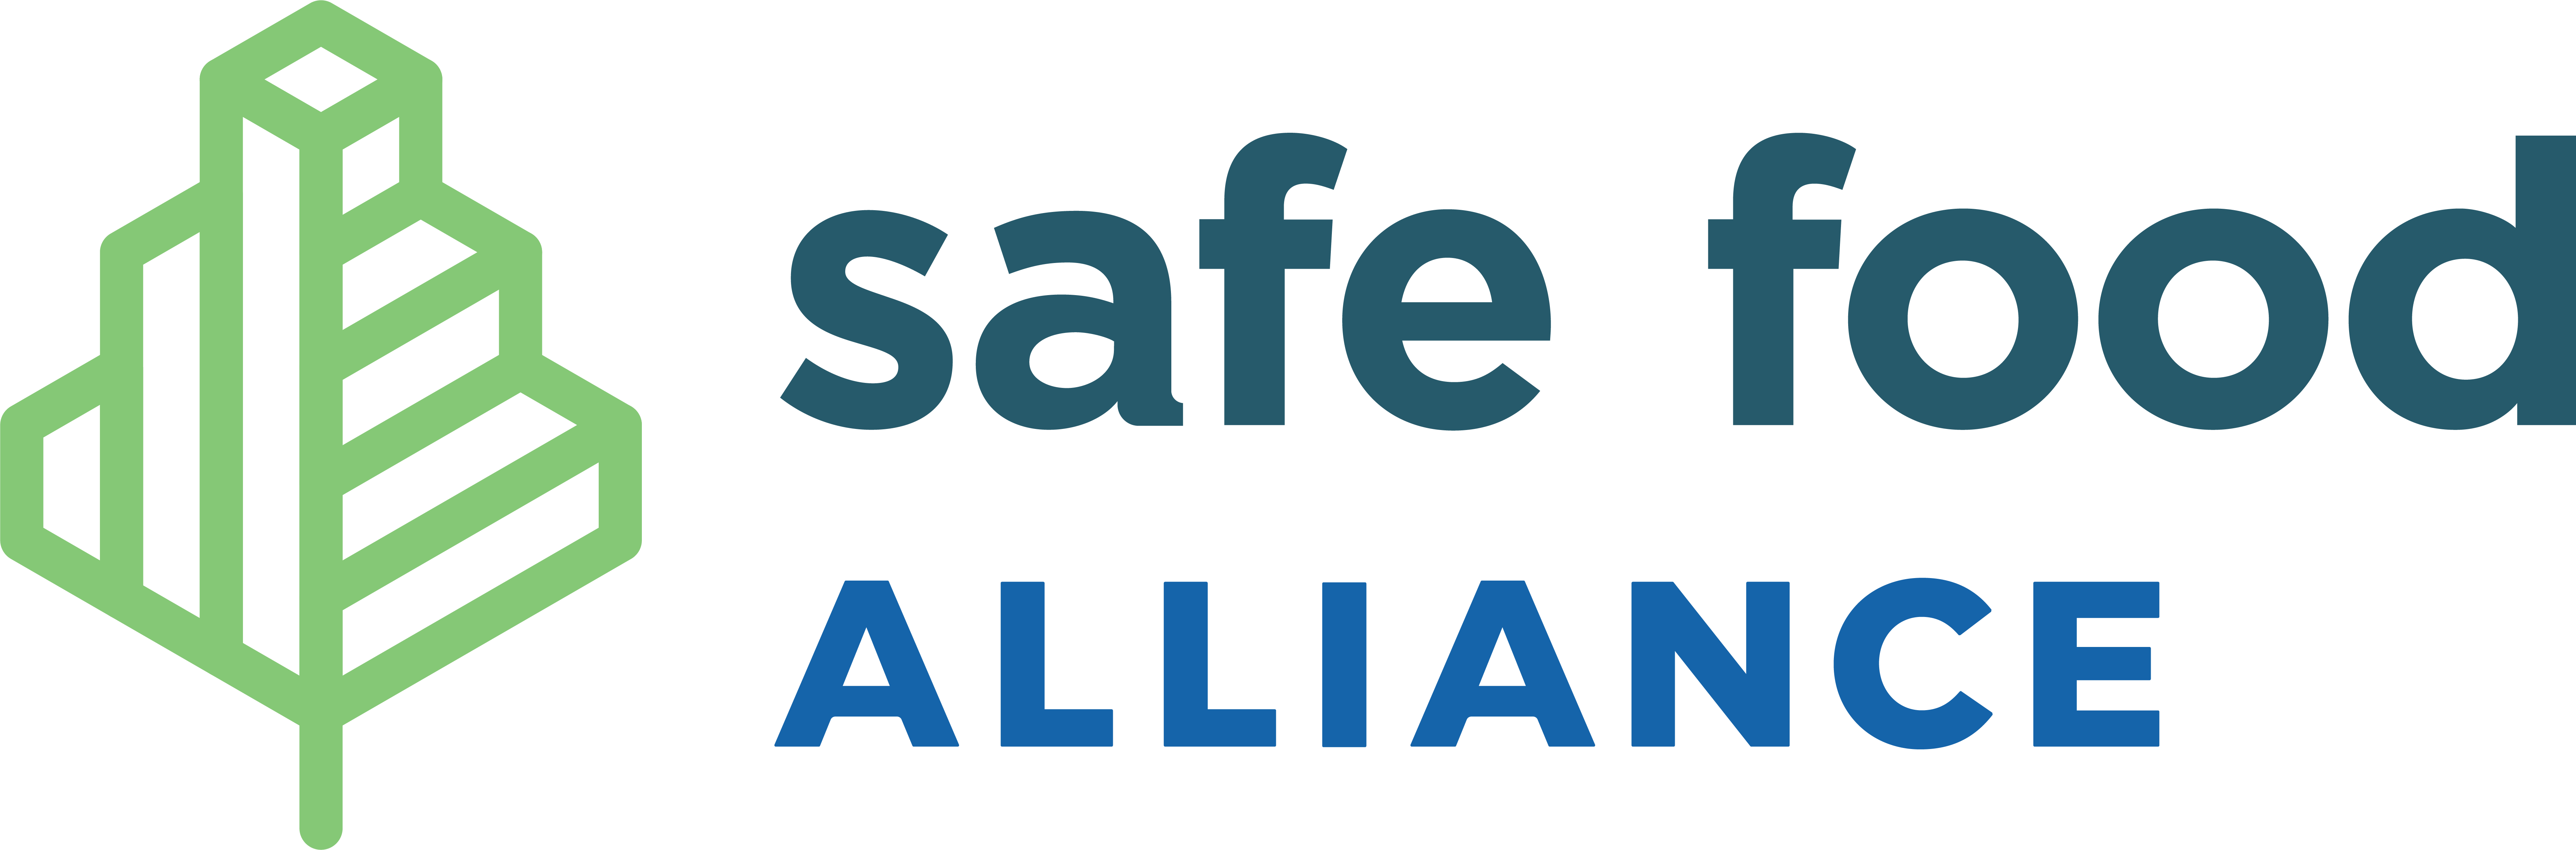 Safe Food Alliance